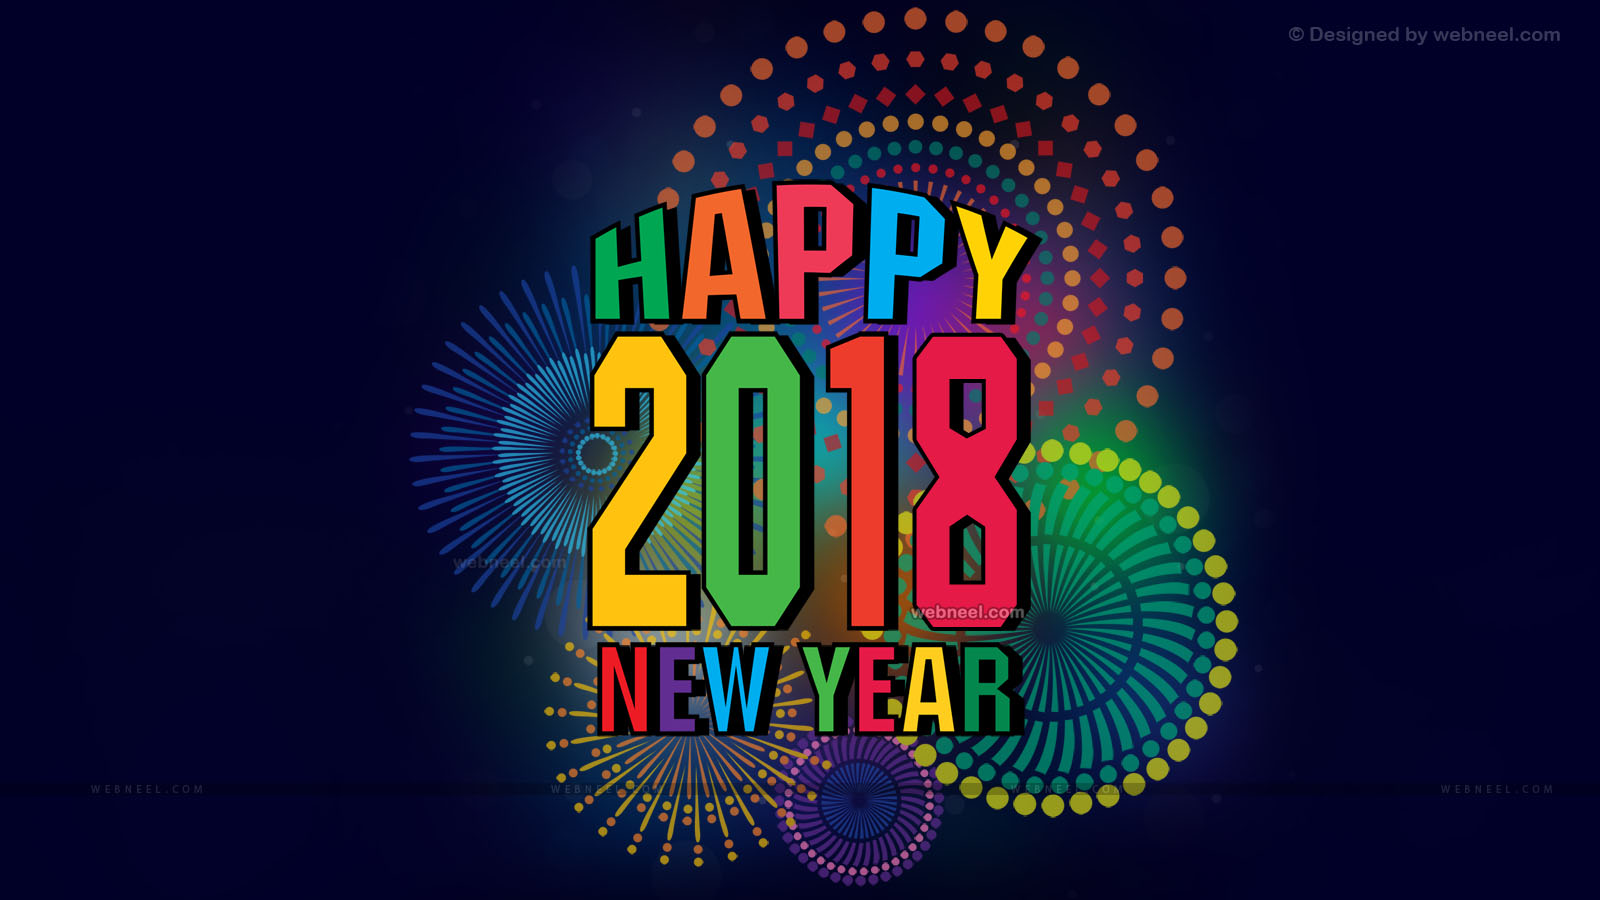 2018 wallpaper happy new year 2018 happy new year 1600x900